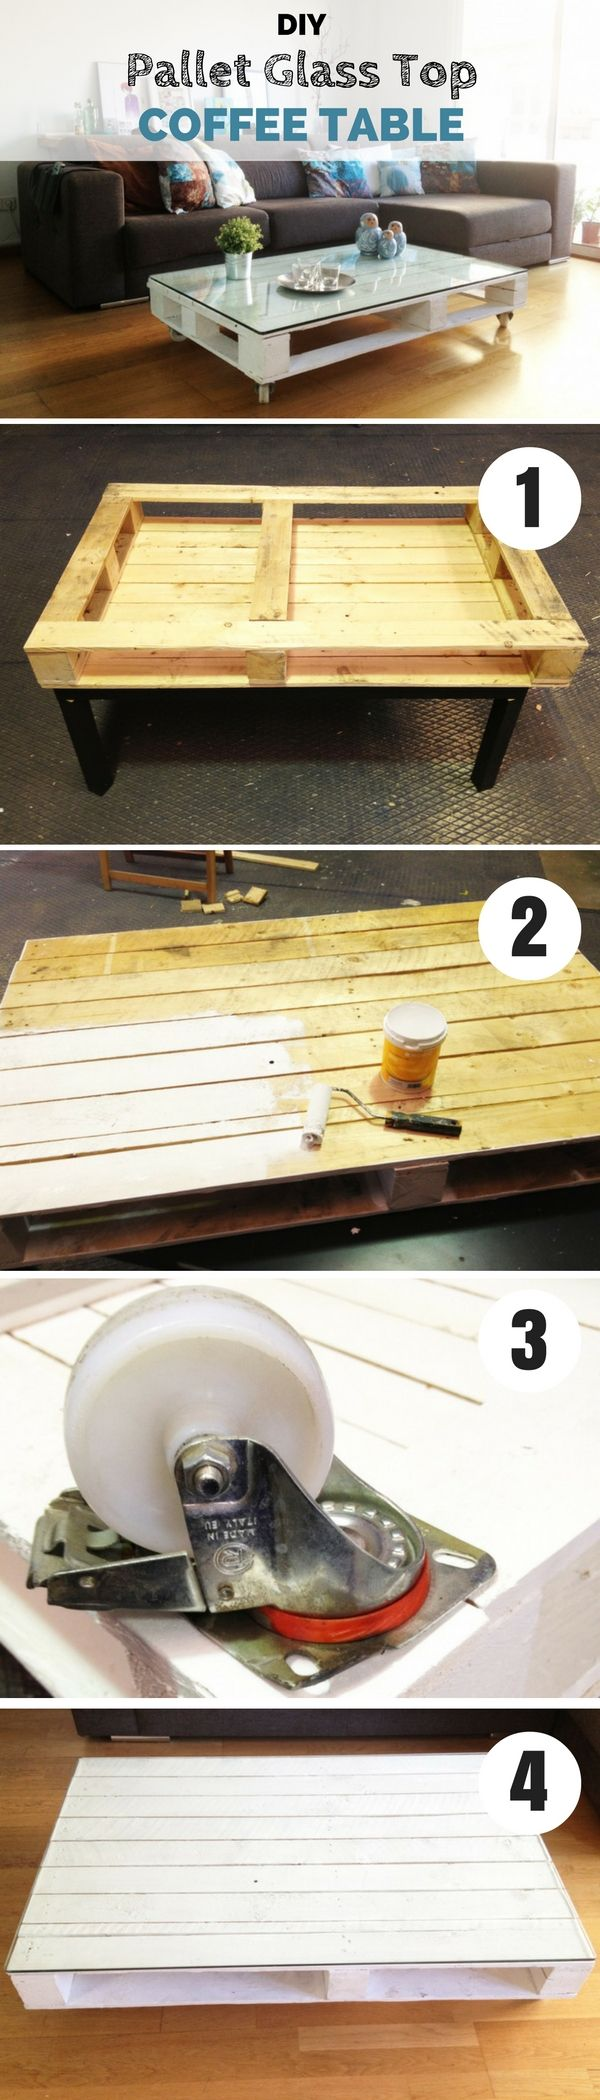 15 Easy DIY Coffee Tables You Can Build on a Budget Pallets